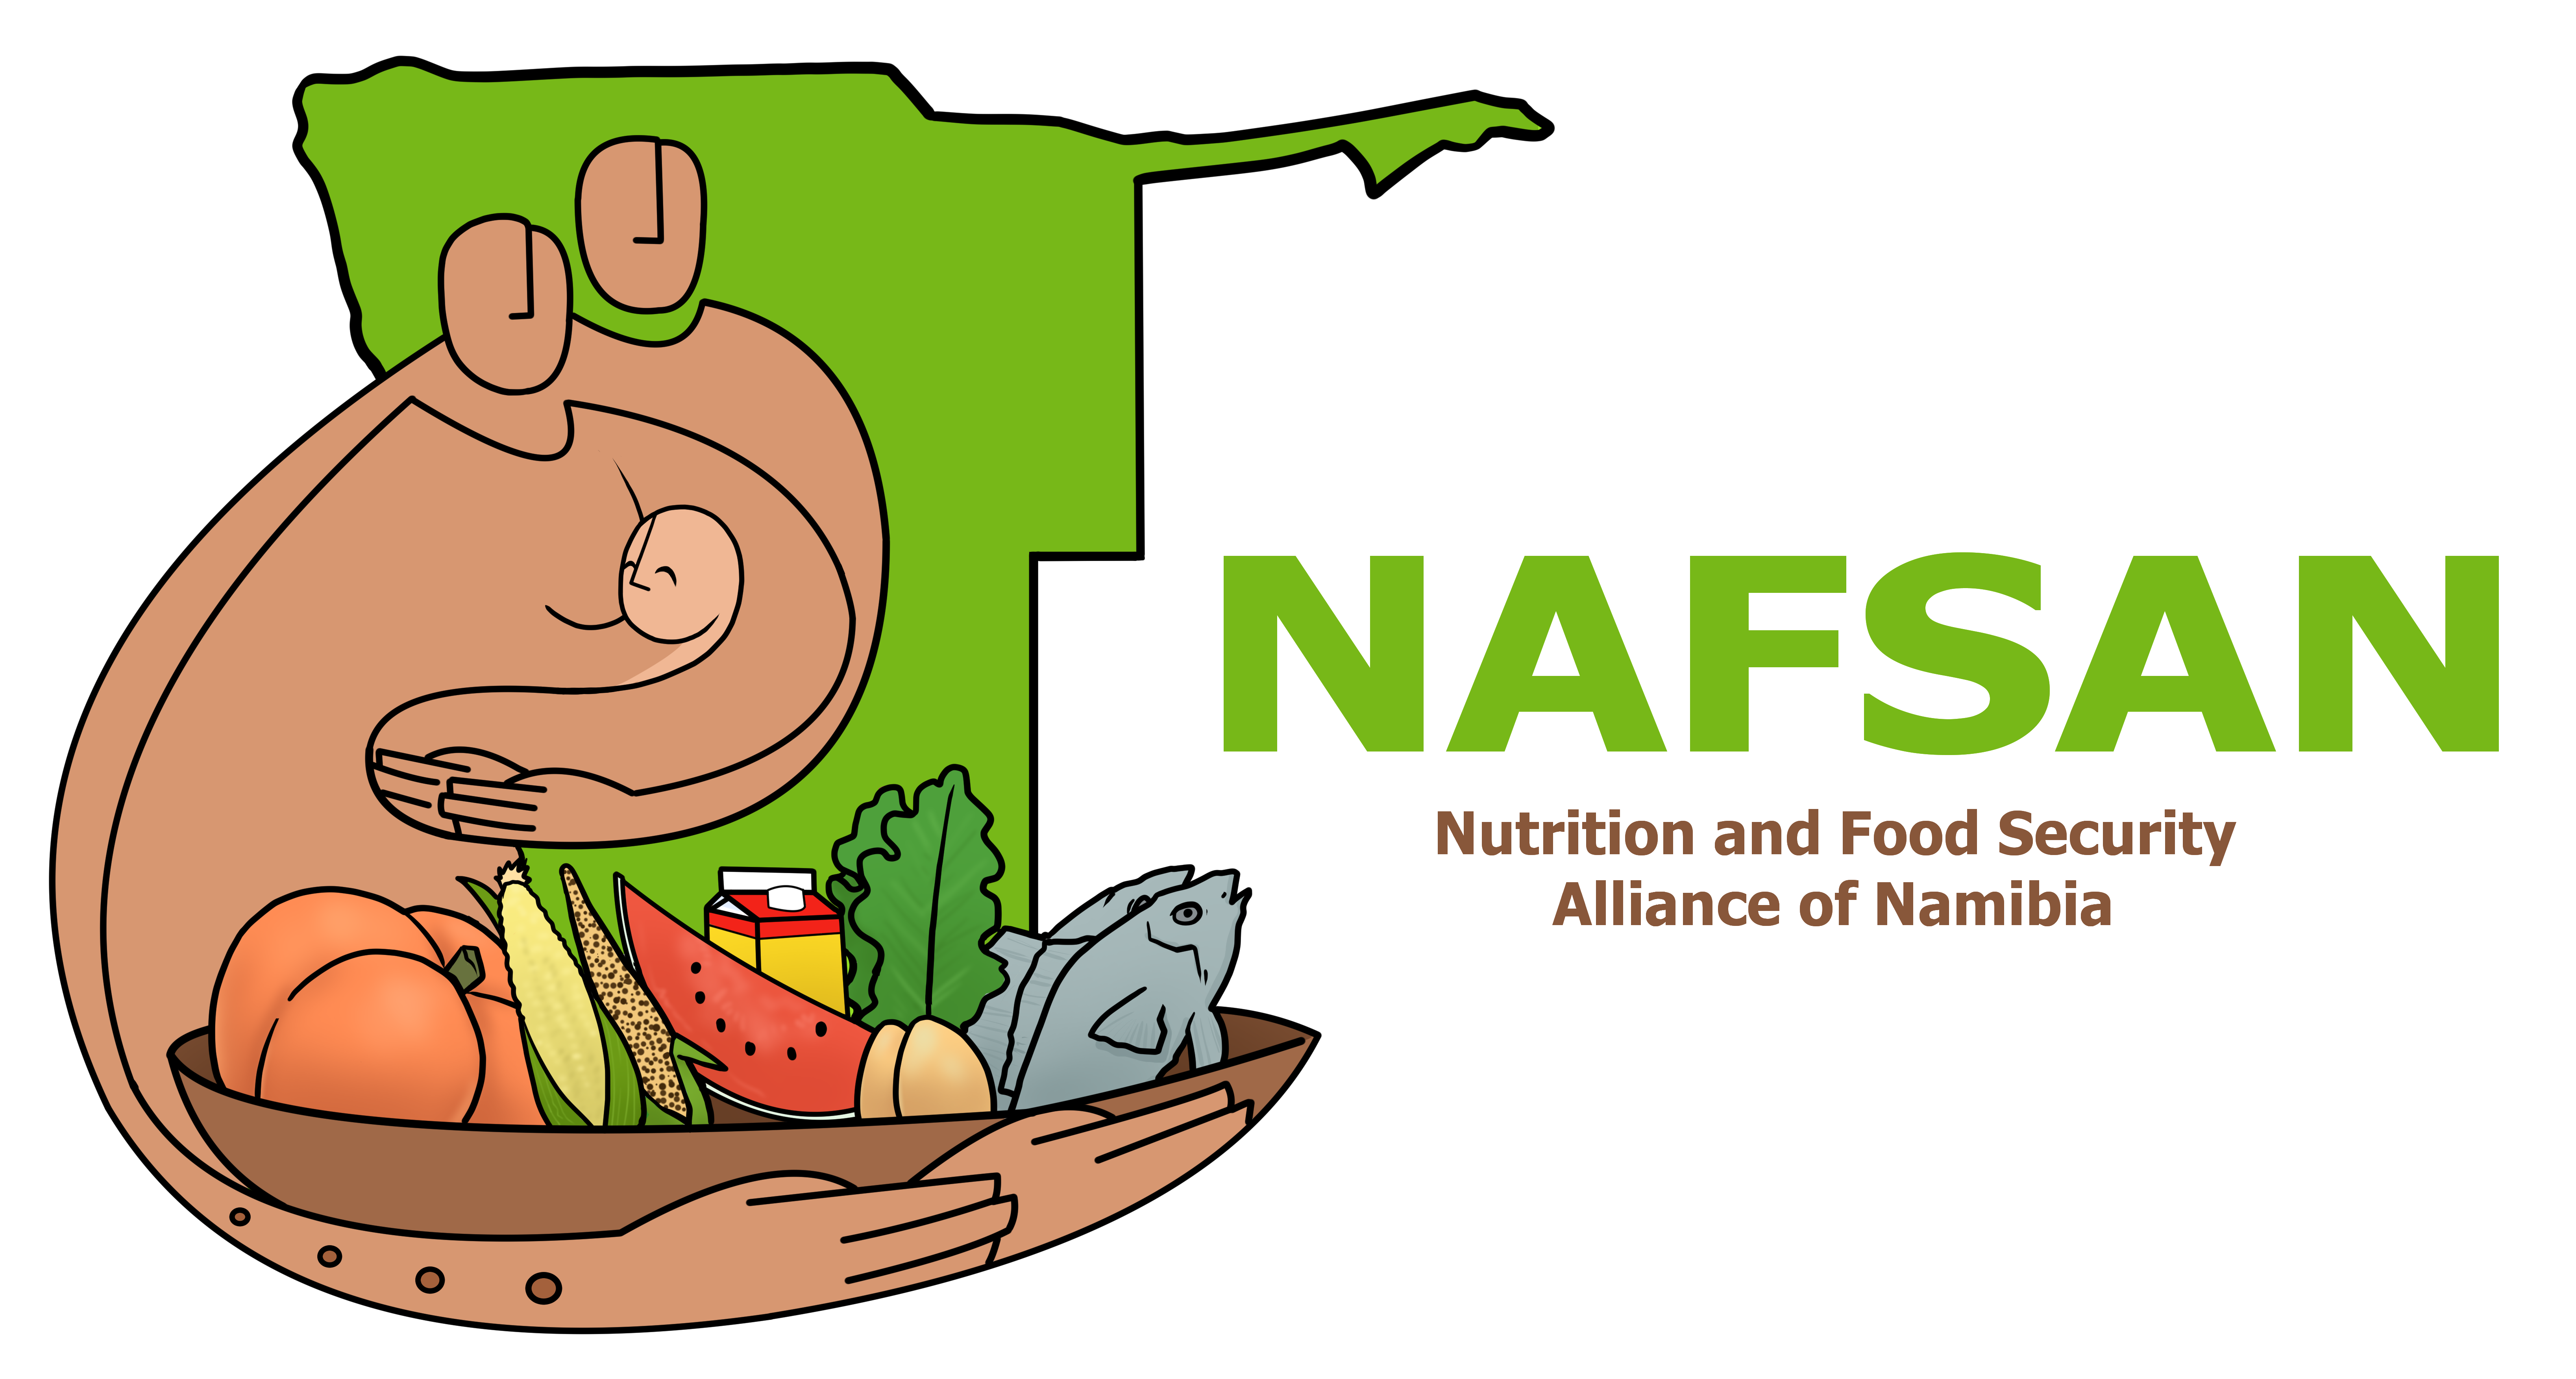 Nutrition and Food Security Alliance of Namibia